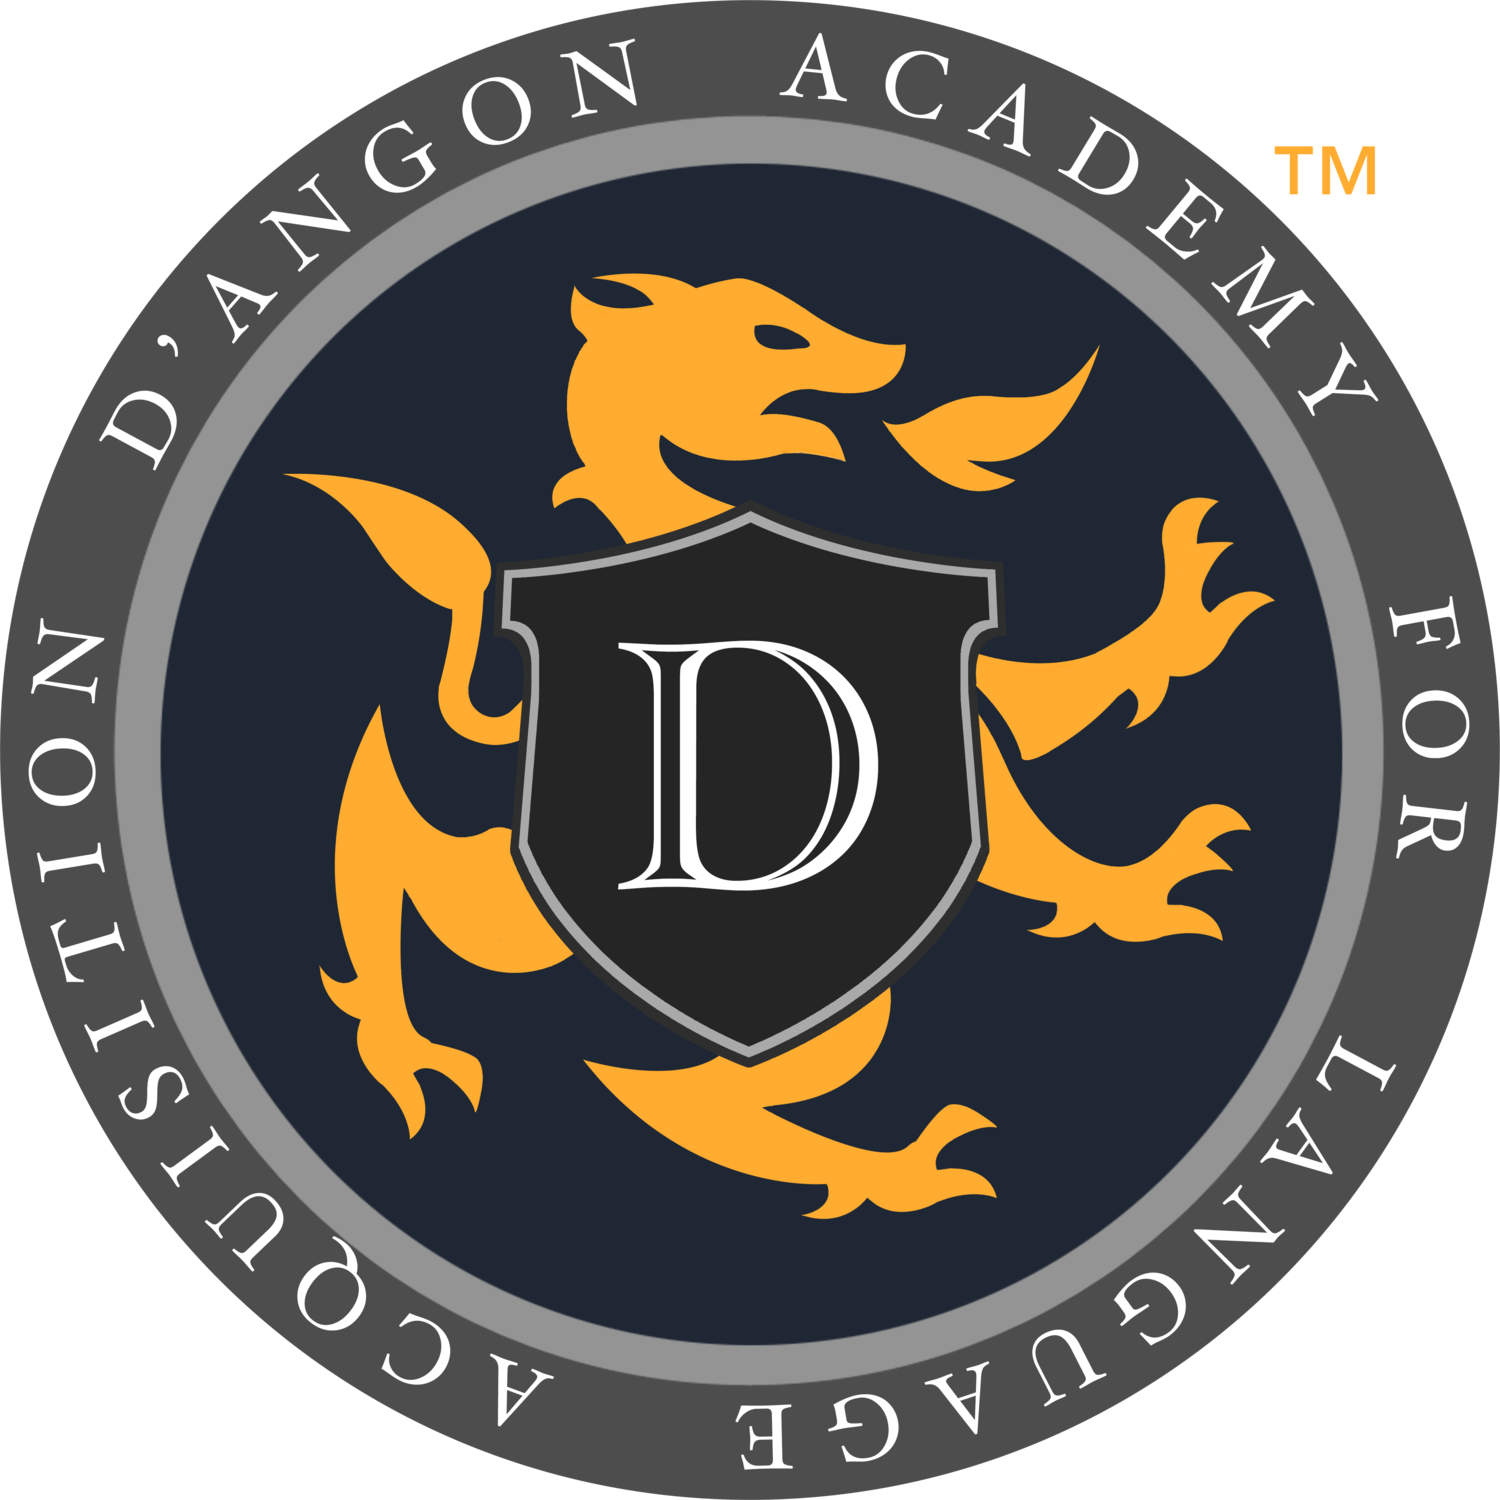 Dangon Academy English Camp